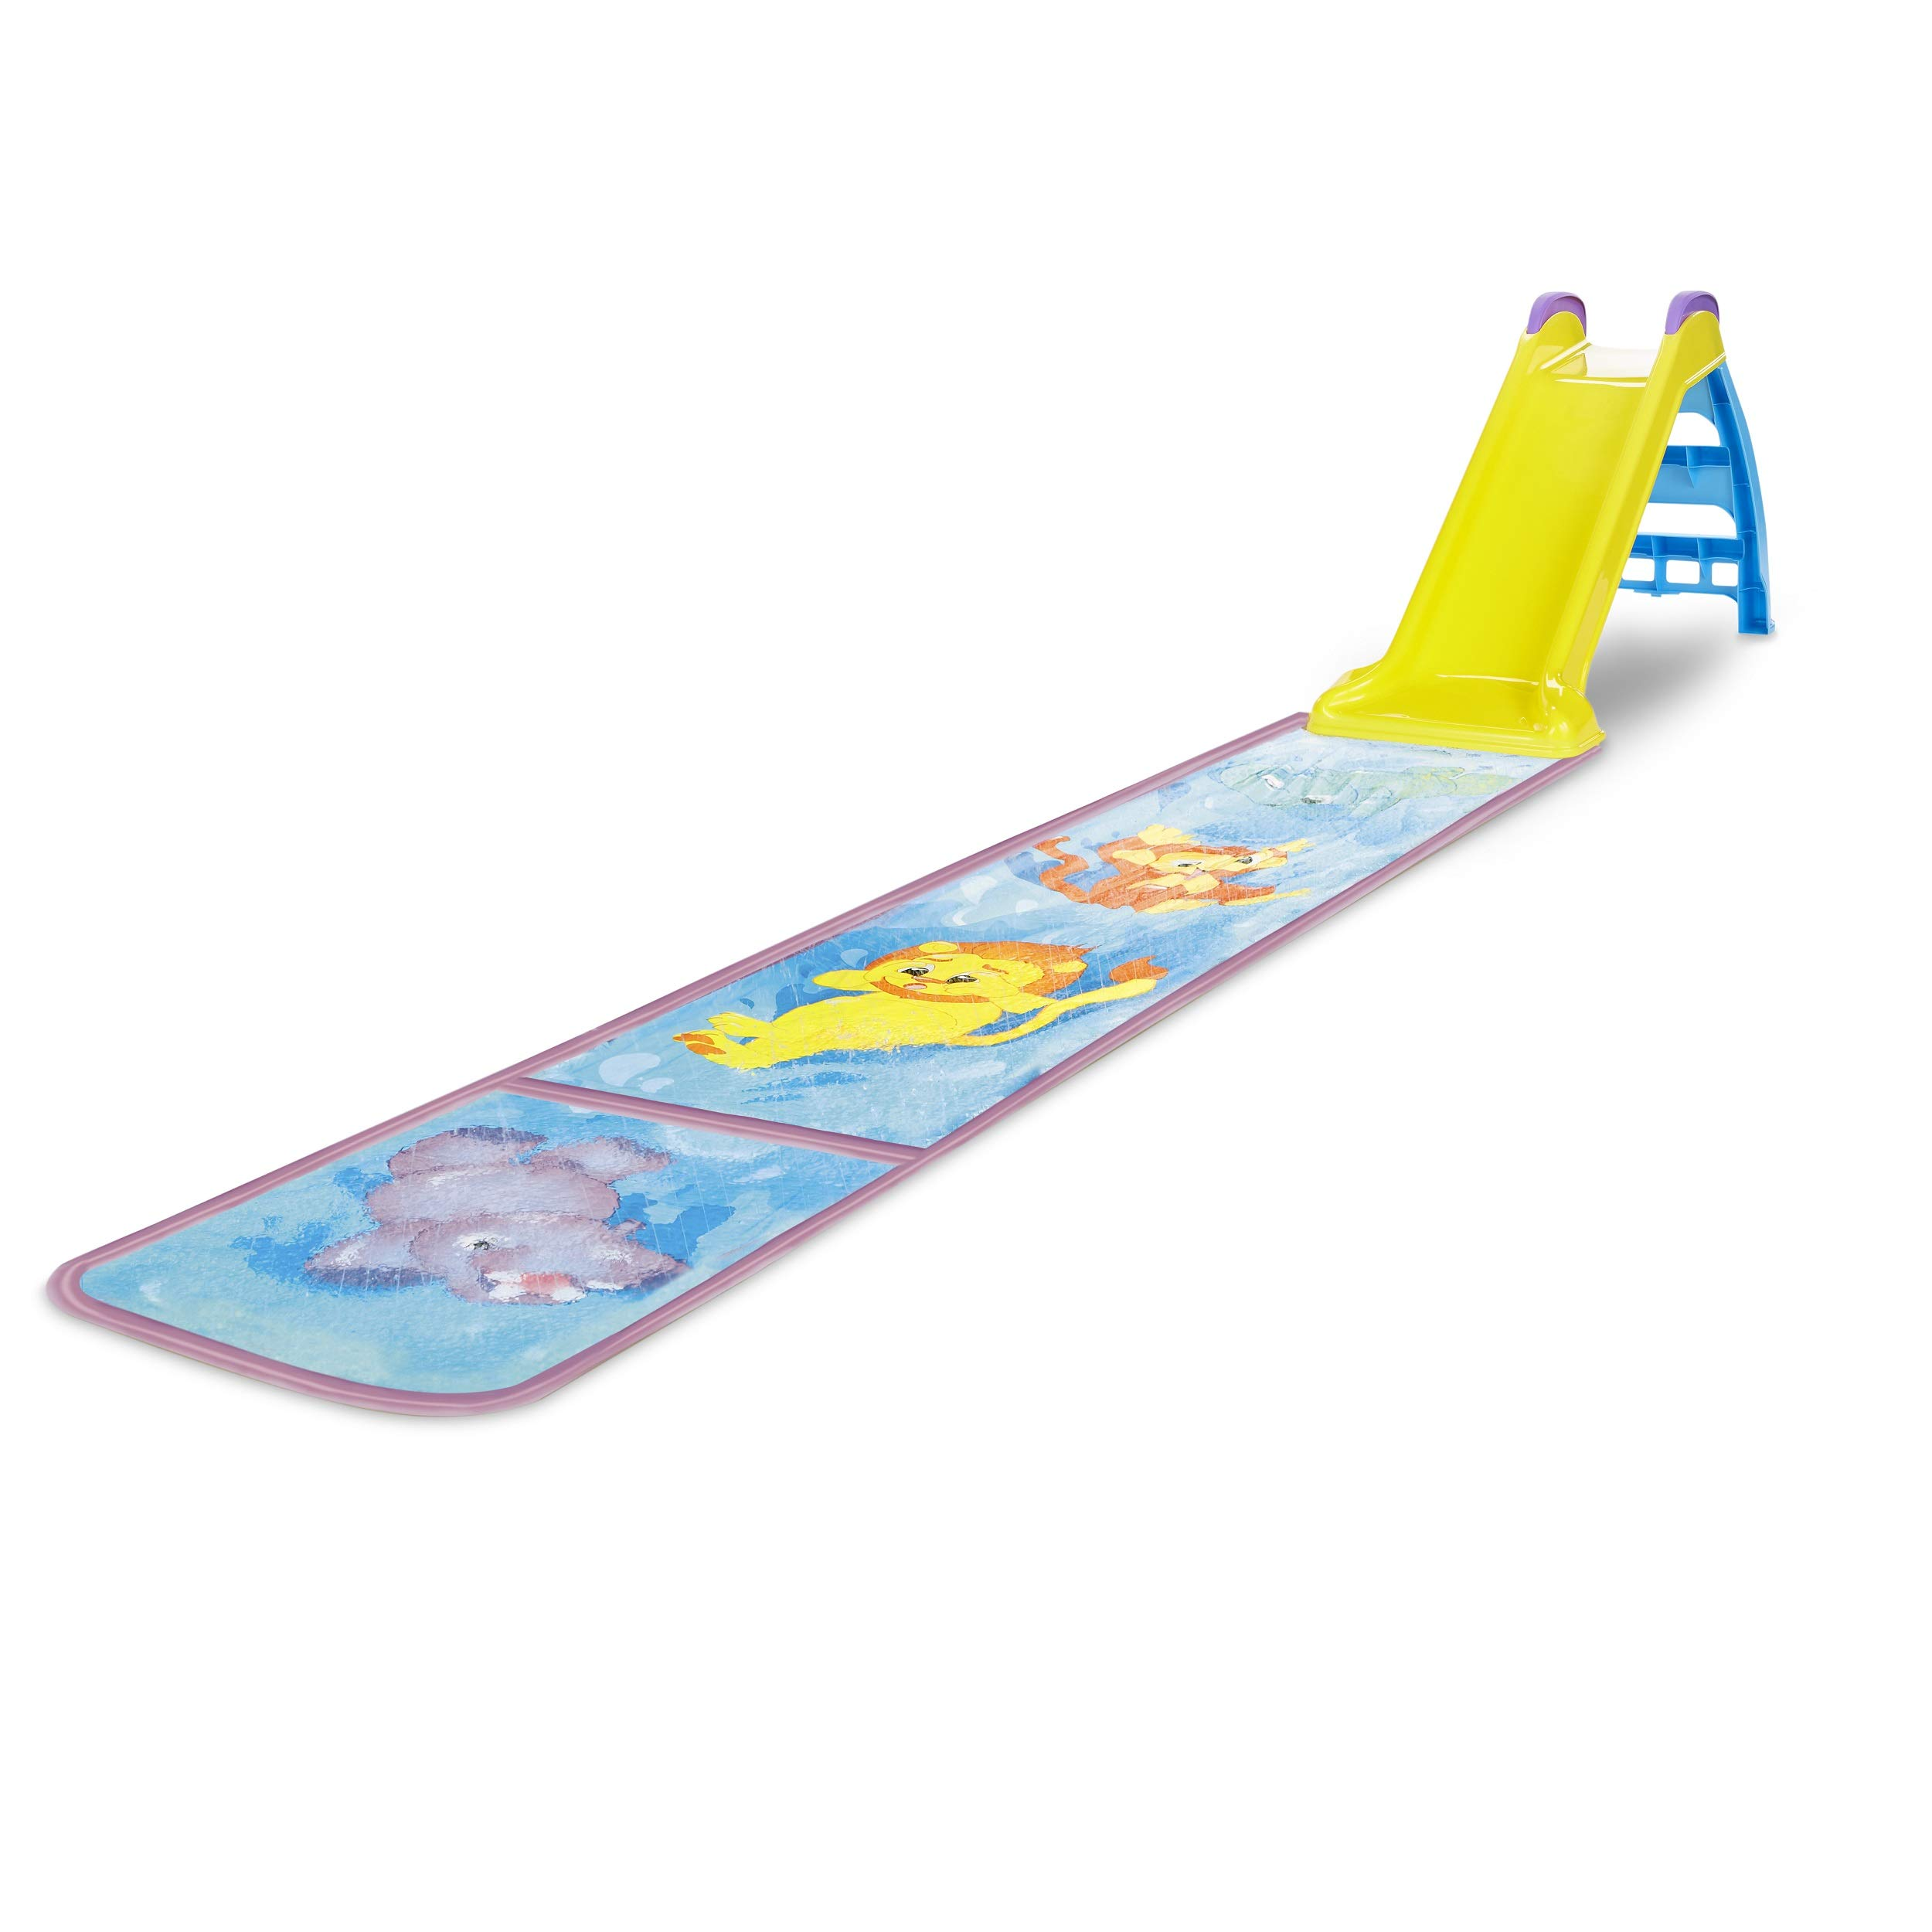 Little Tikes Wet & Dry First Slide - Amazon Exclusive by Little Tikes